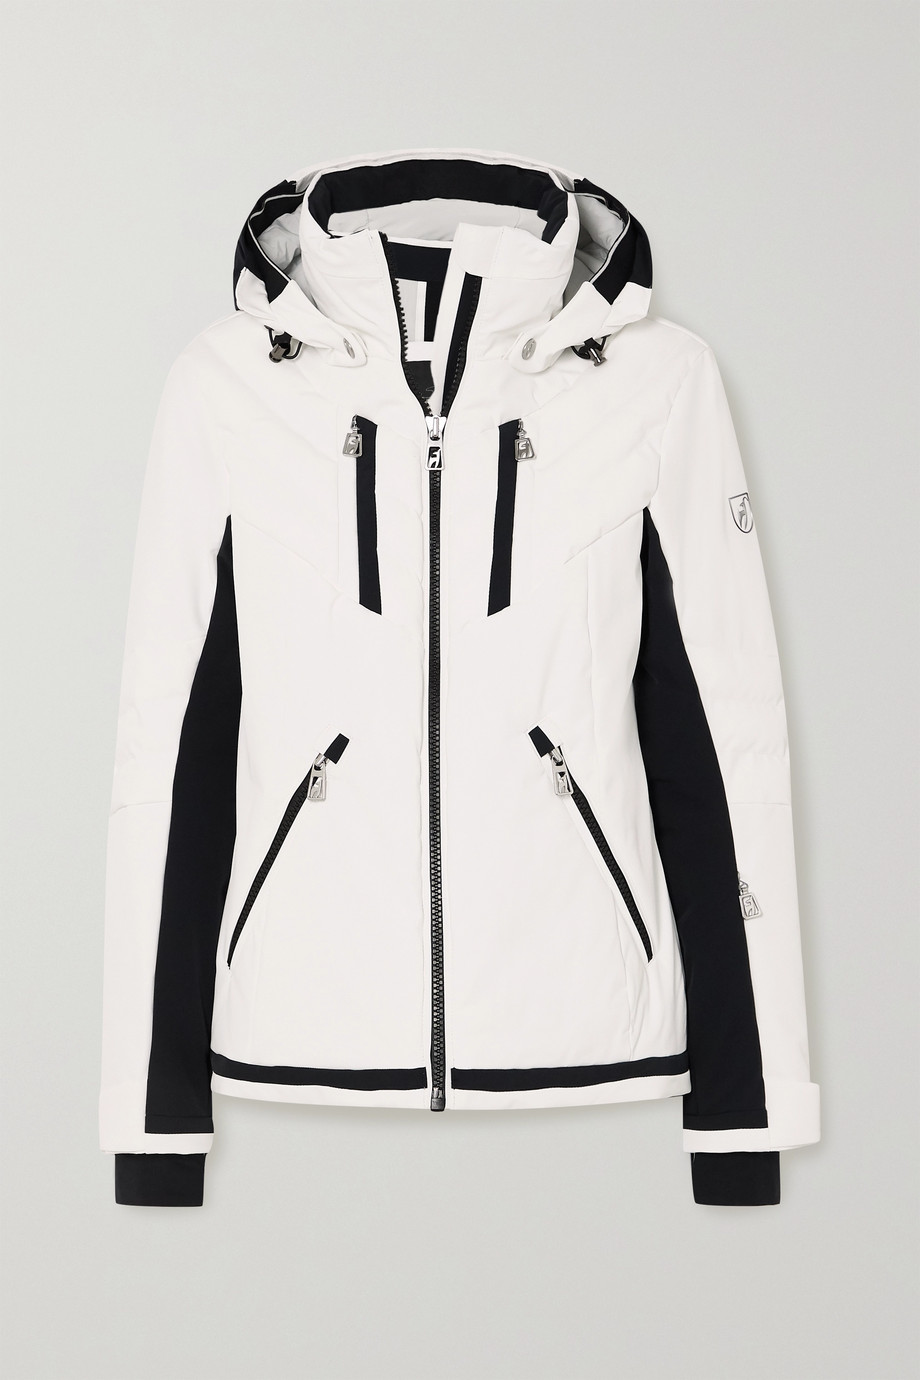 toni sailer Henni hooded two-tone ski jacket